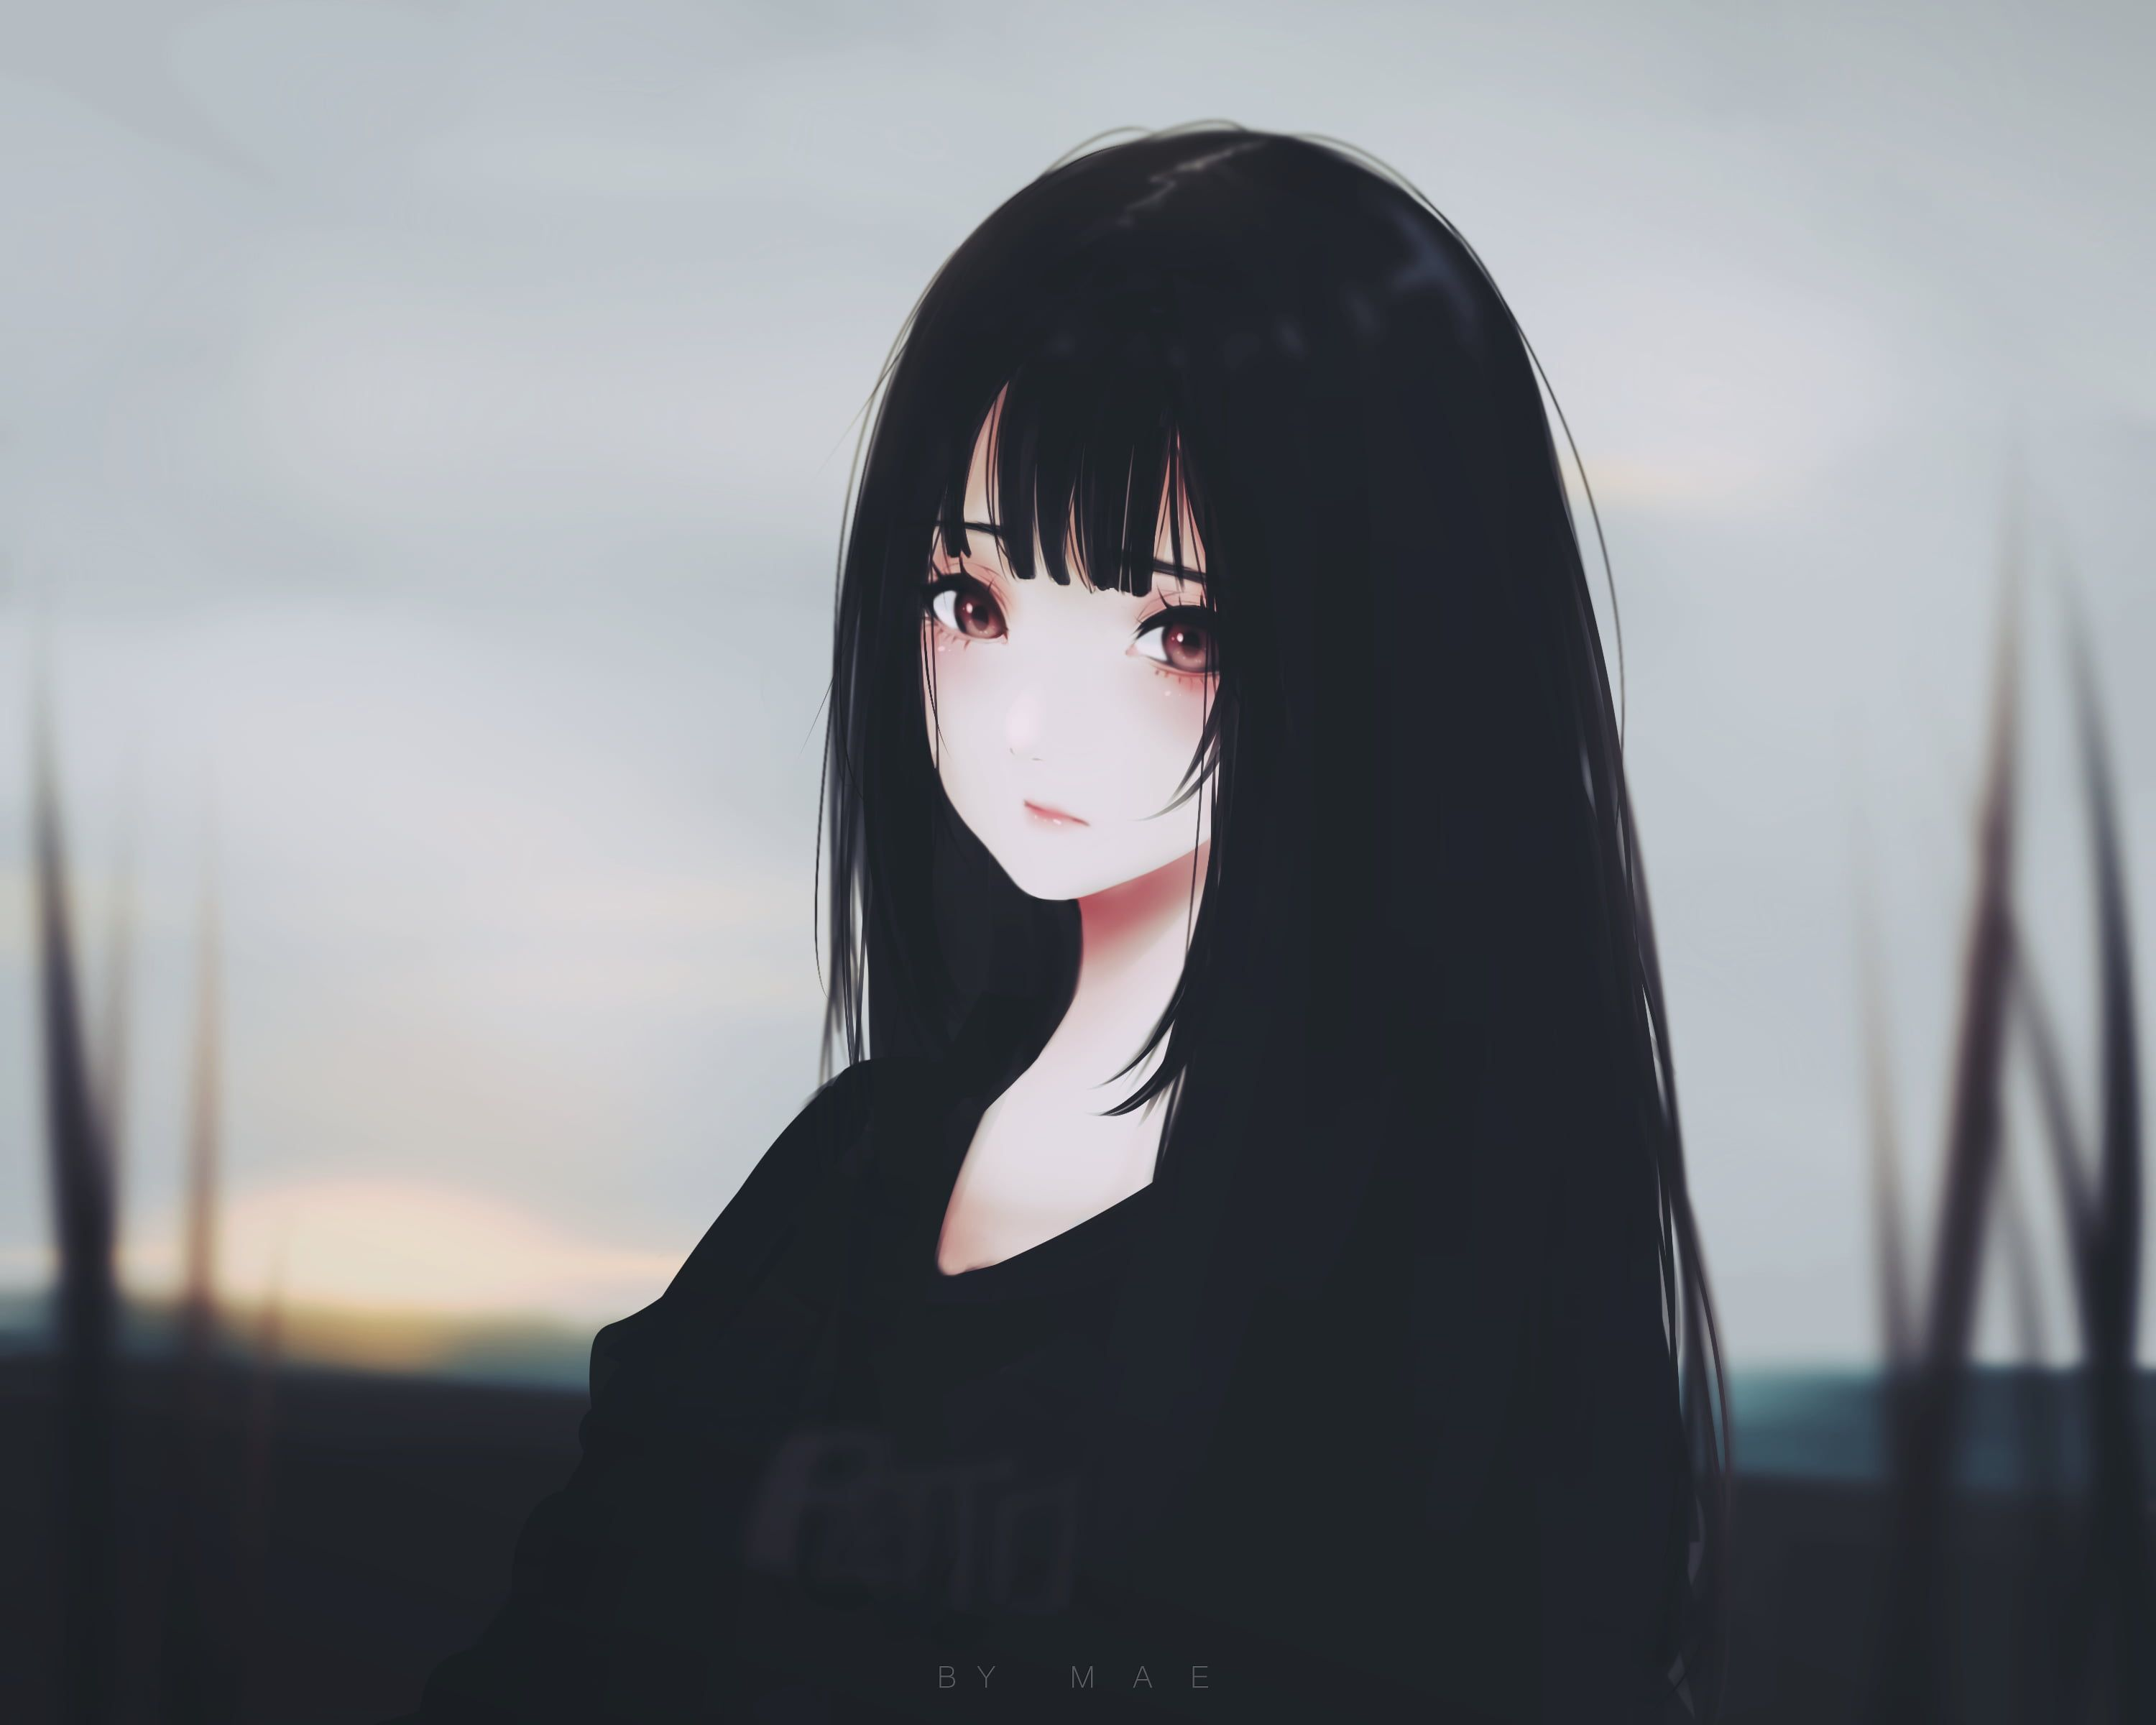 Black Haired Female Character Anime Anime Girls Original Characters Kyrie Meii Brunette Red Eyes Dark Hair Artwork 2k Wall In 2020 Anime Art Girl Dark Anime Anime